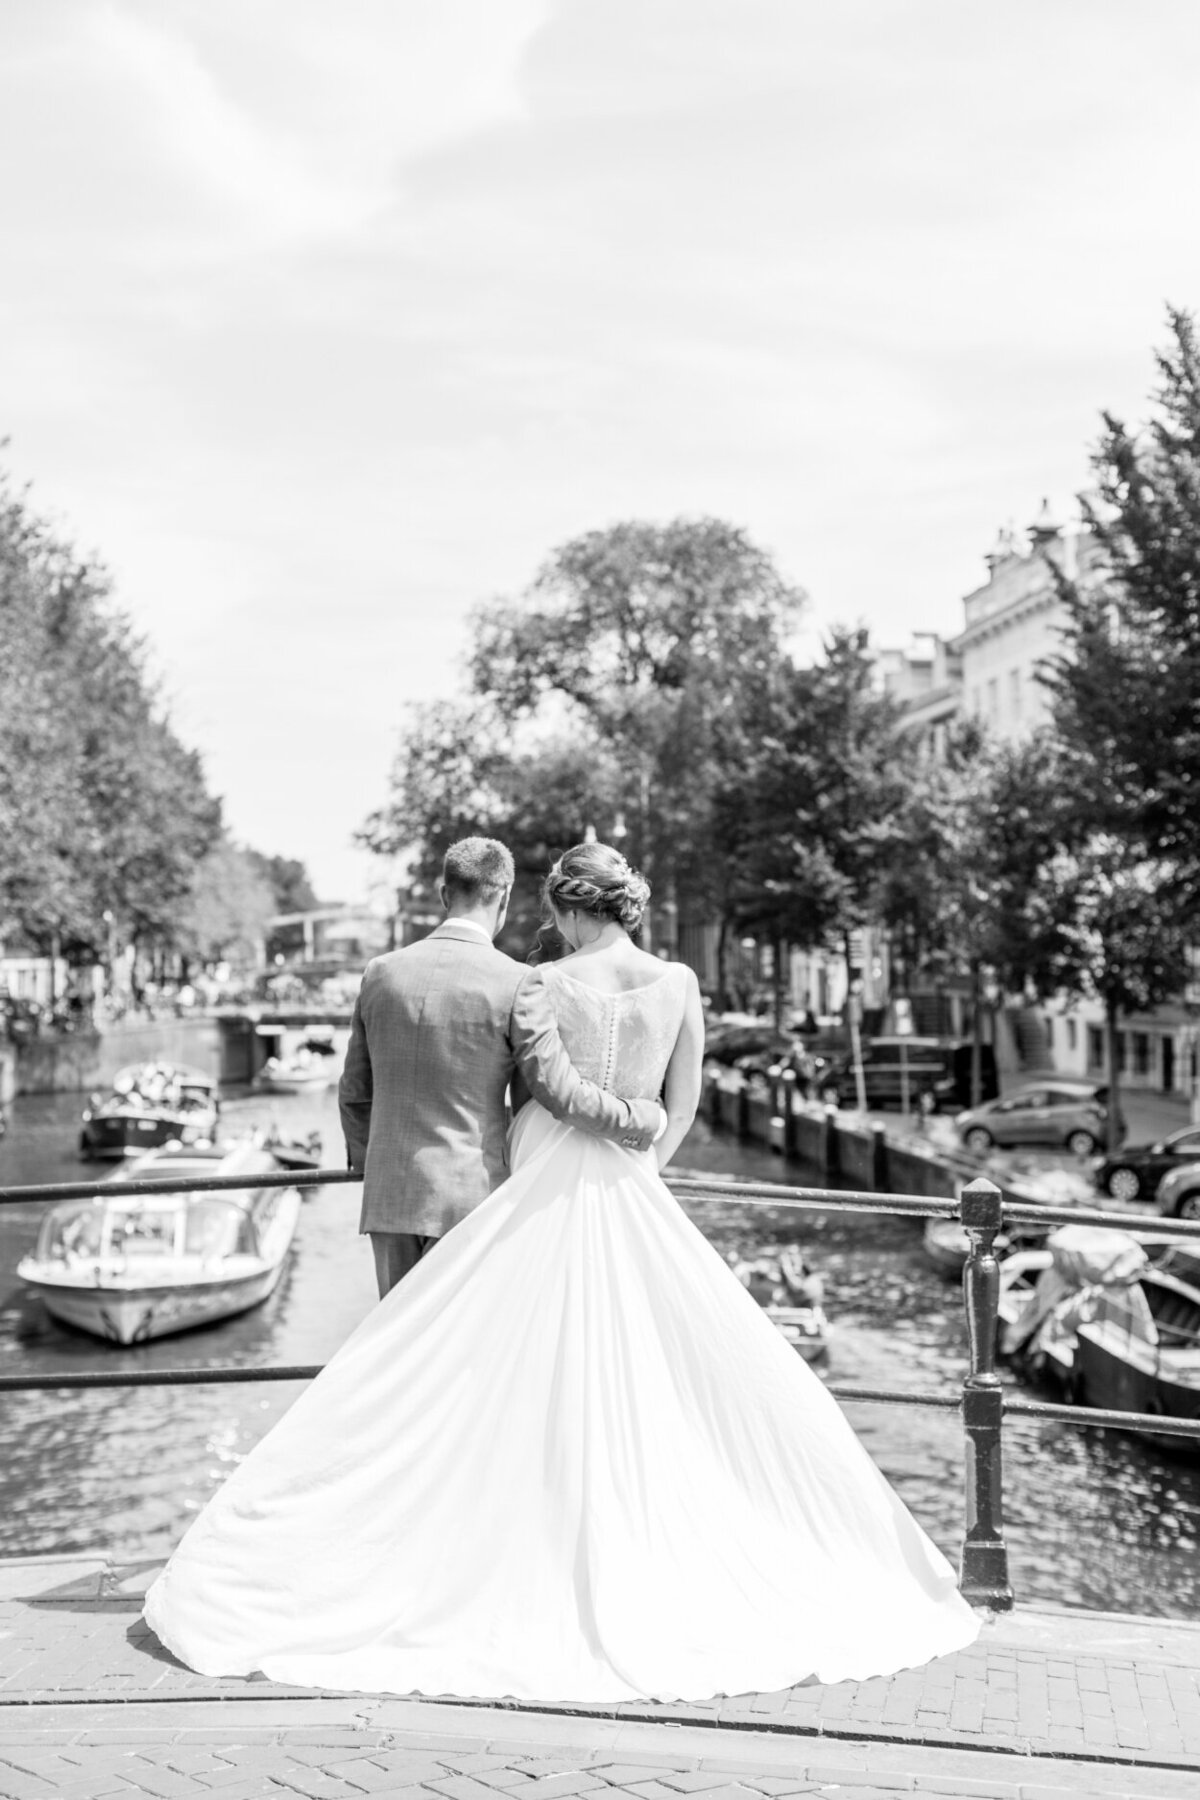 Black and white wedding portrait of an elopement in Amsterdam for a photo shoot organized by Lovely & Planned